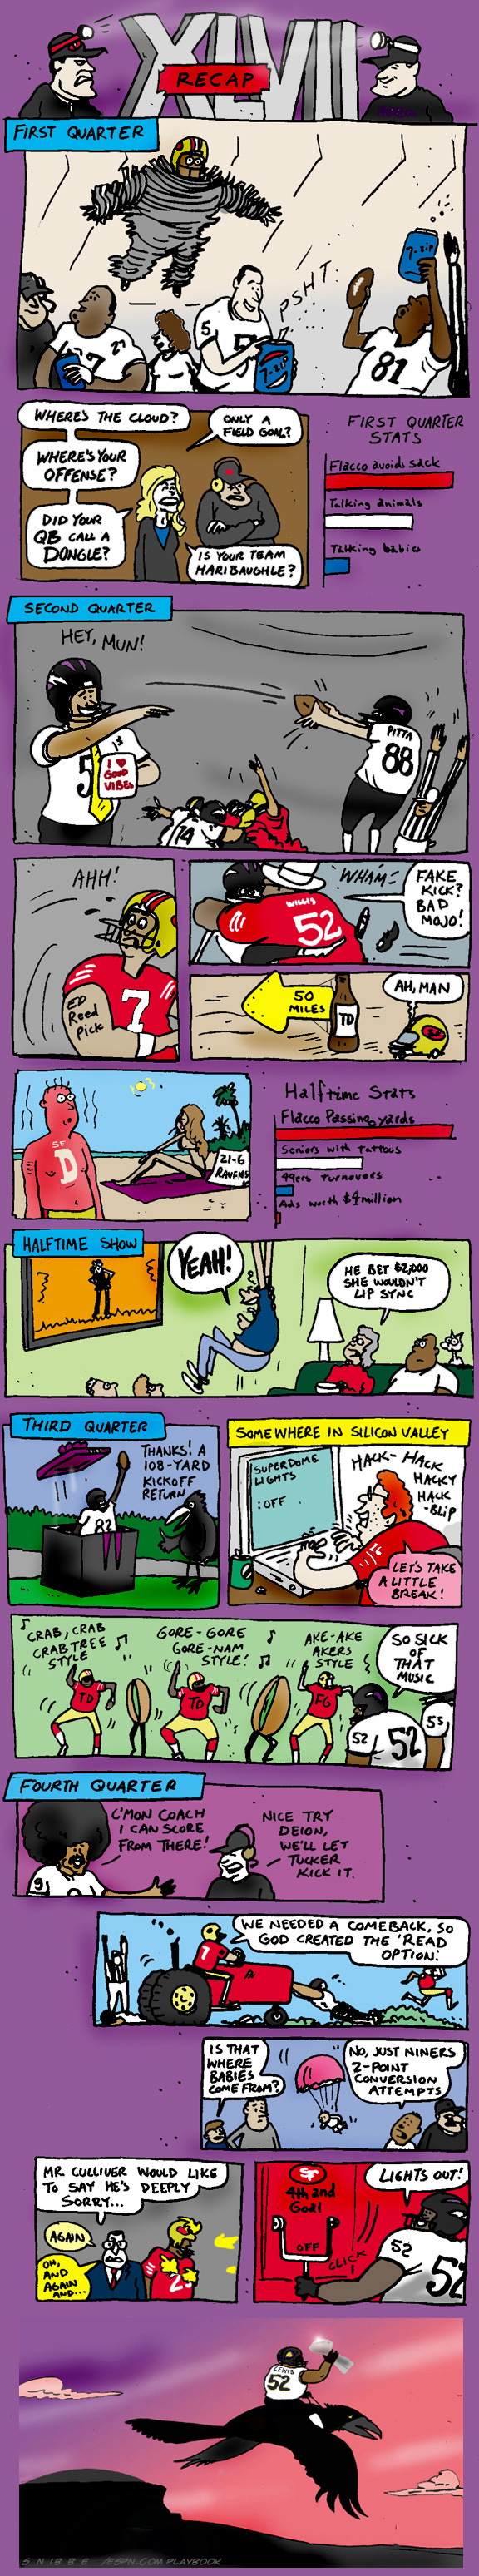 Kurt Snibbe's Super Bowl XLVII cartoon